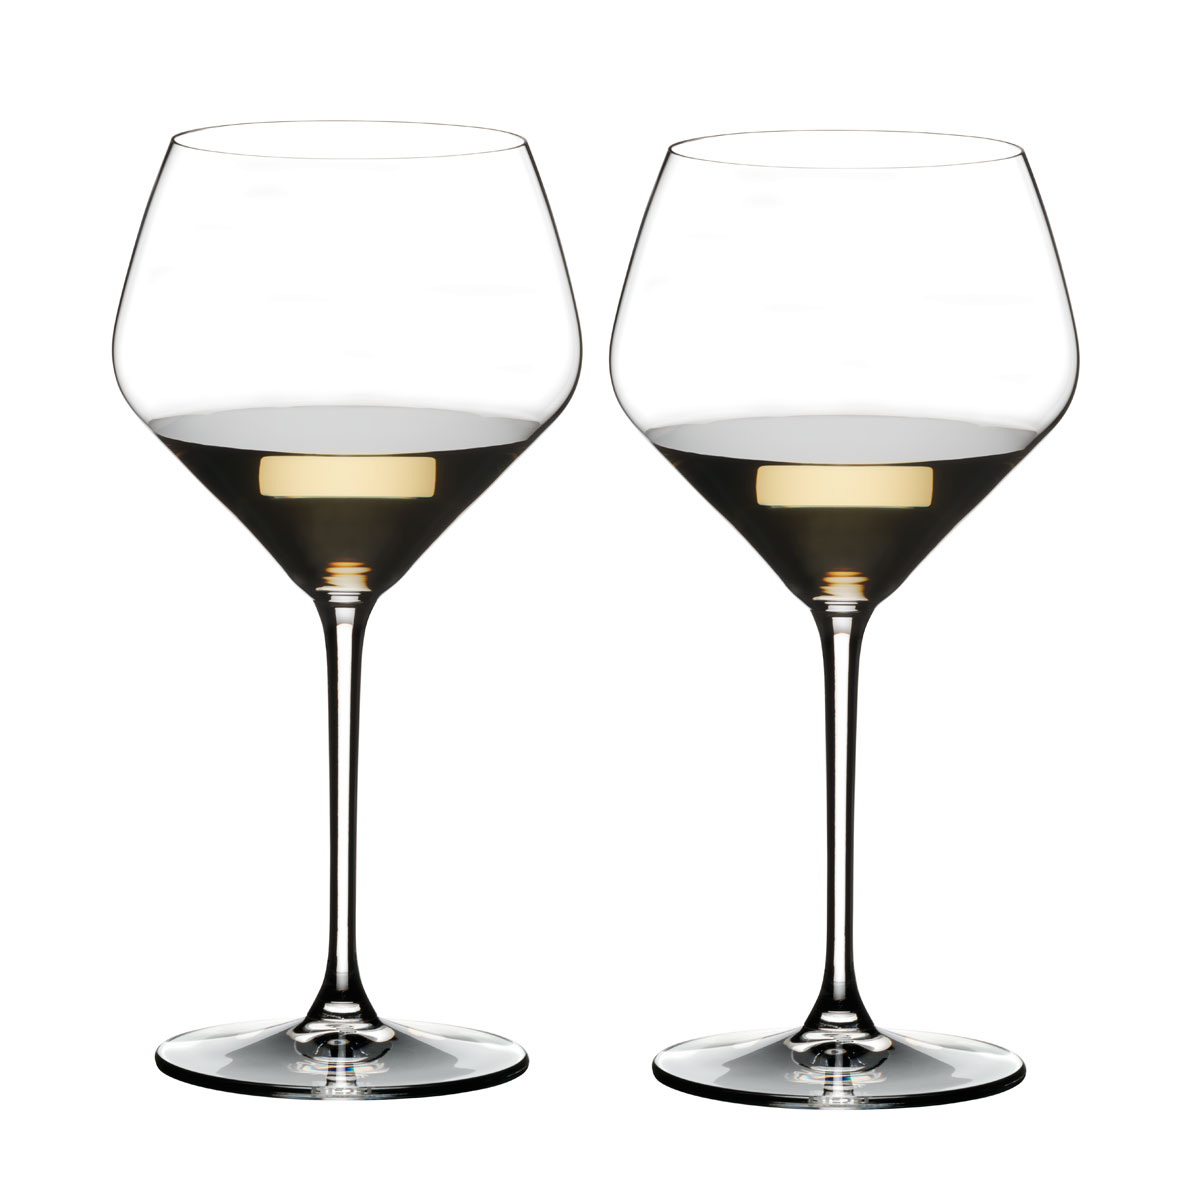 Riedel Heart to Heart Oaked Chardonnay Wine Glasses, Pair